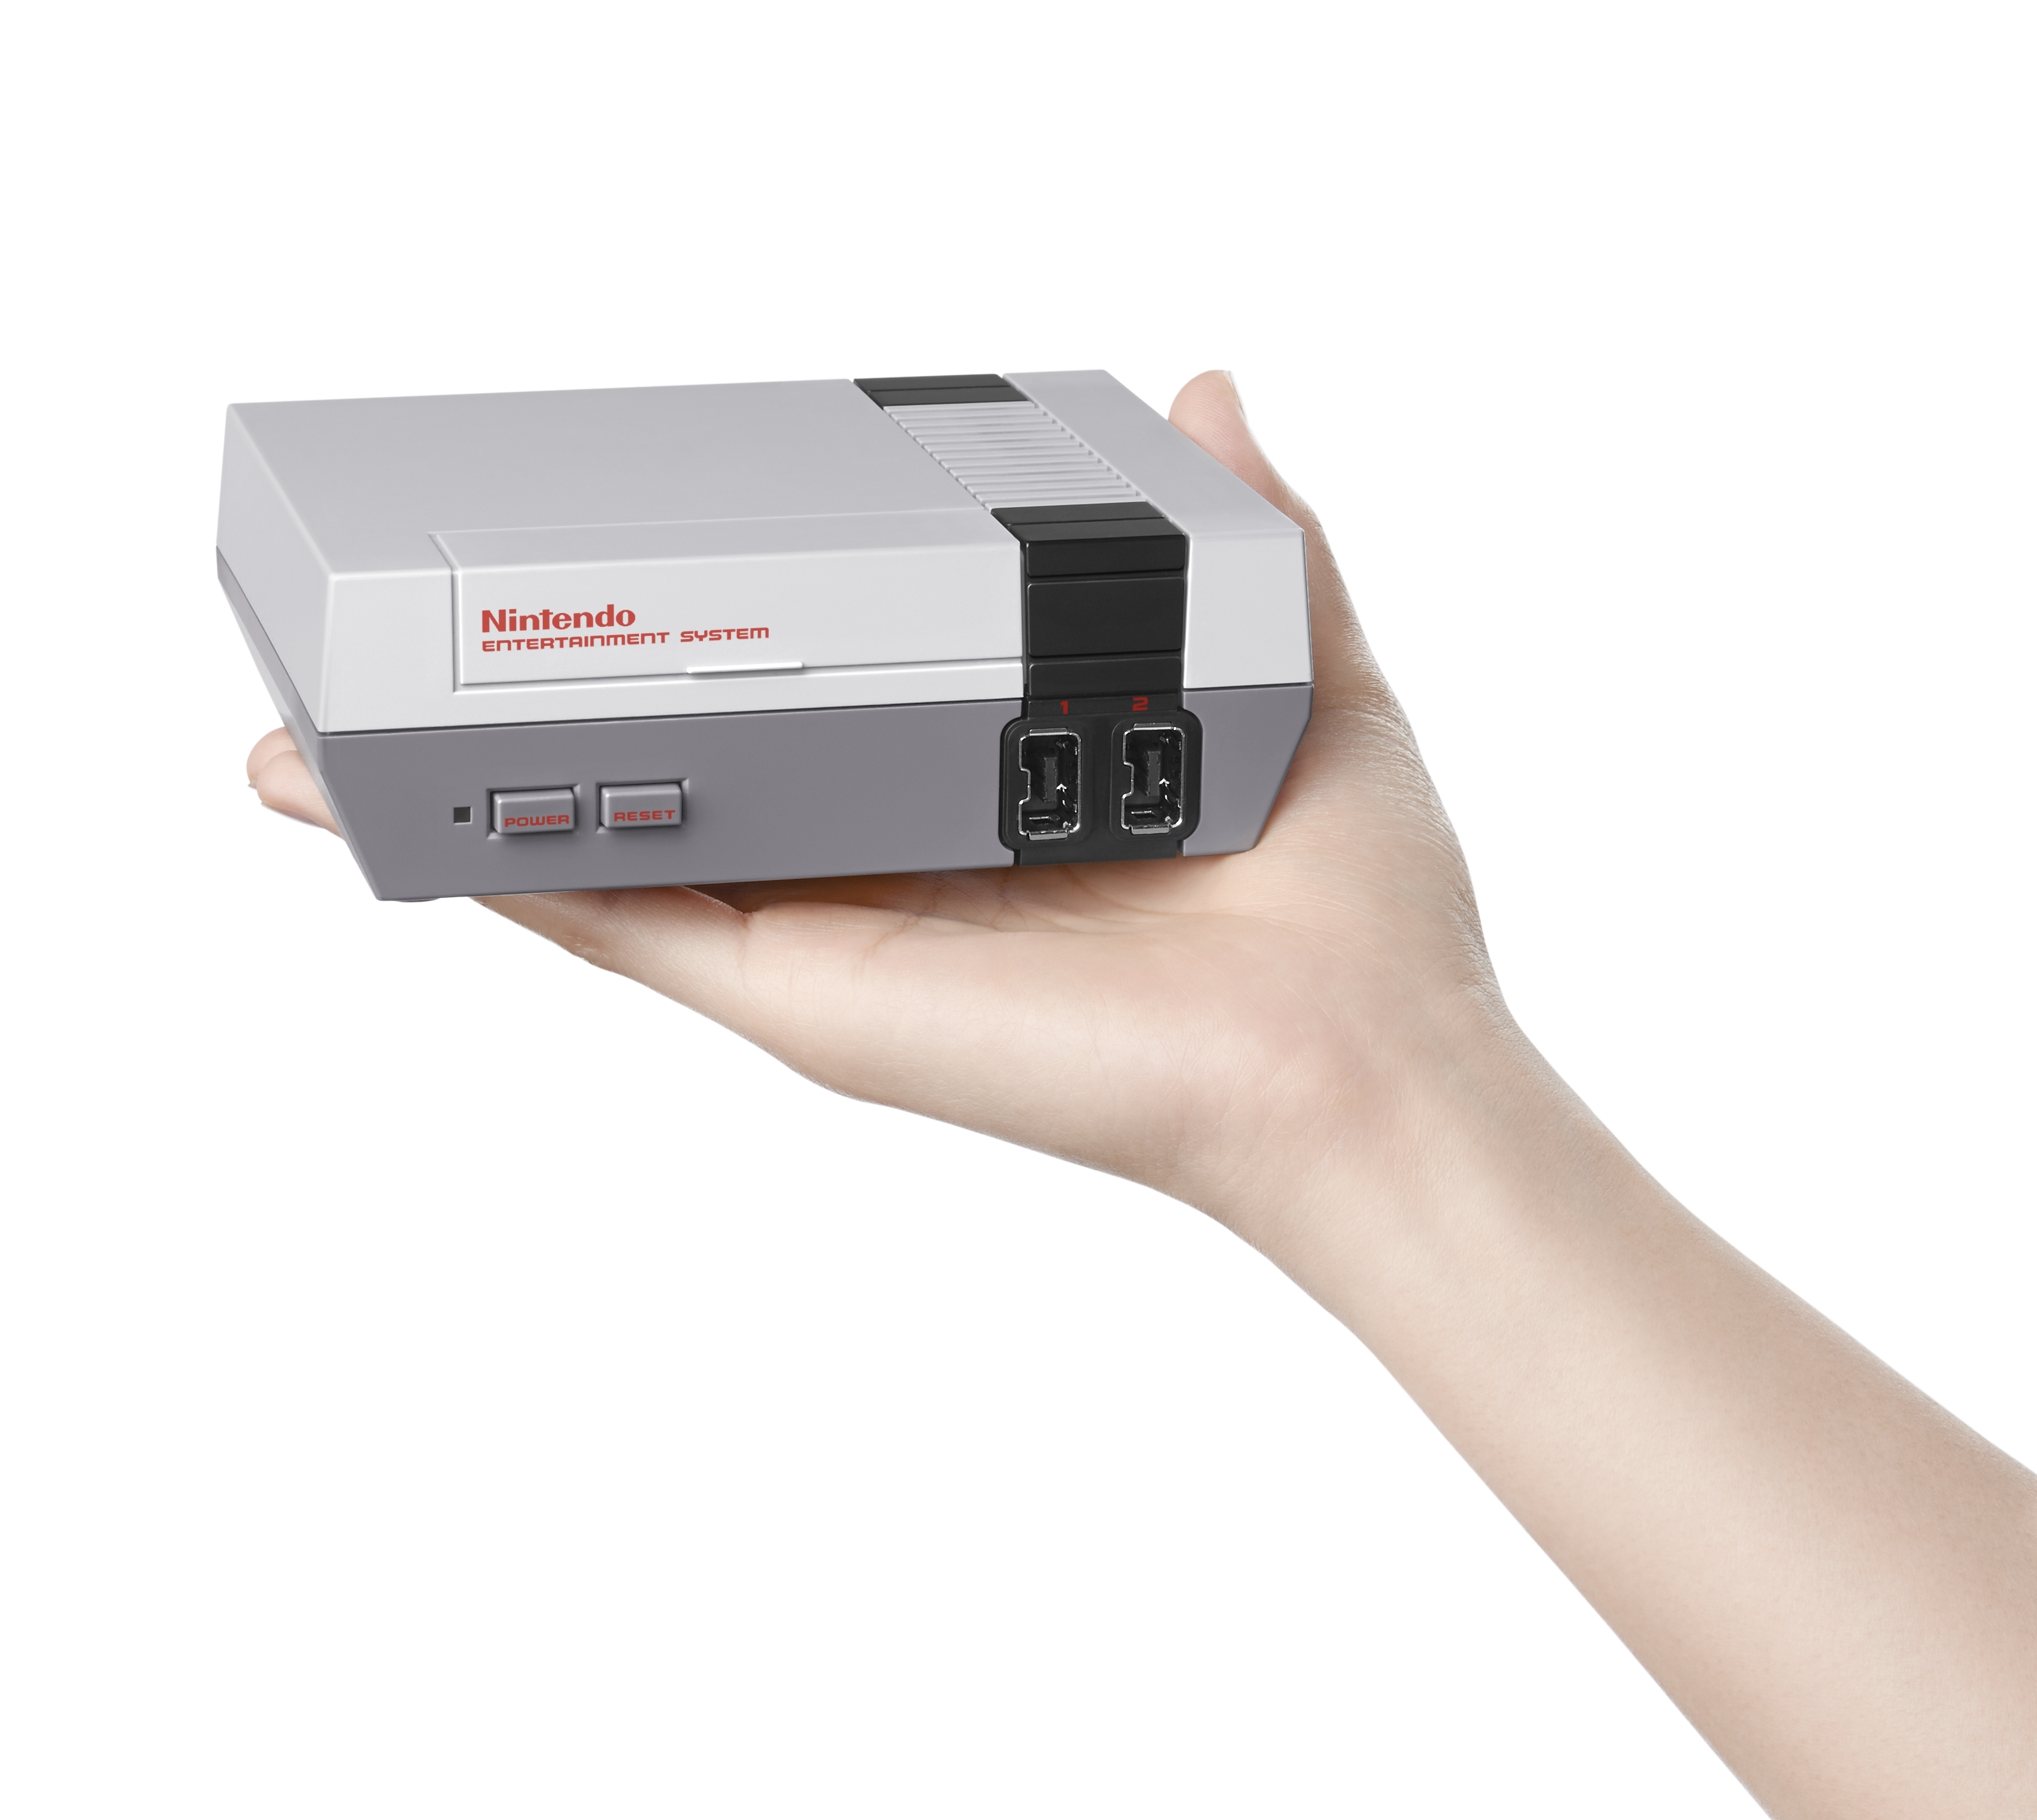 Relive Past Glories With Nintendo S Ultimate Retro Gaming Experience